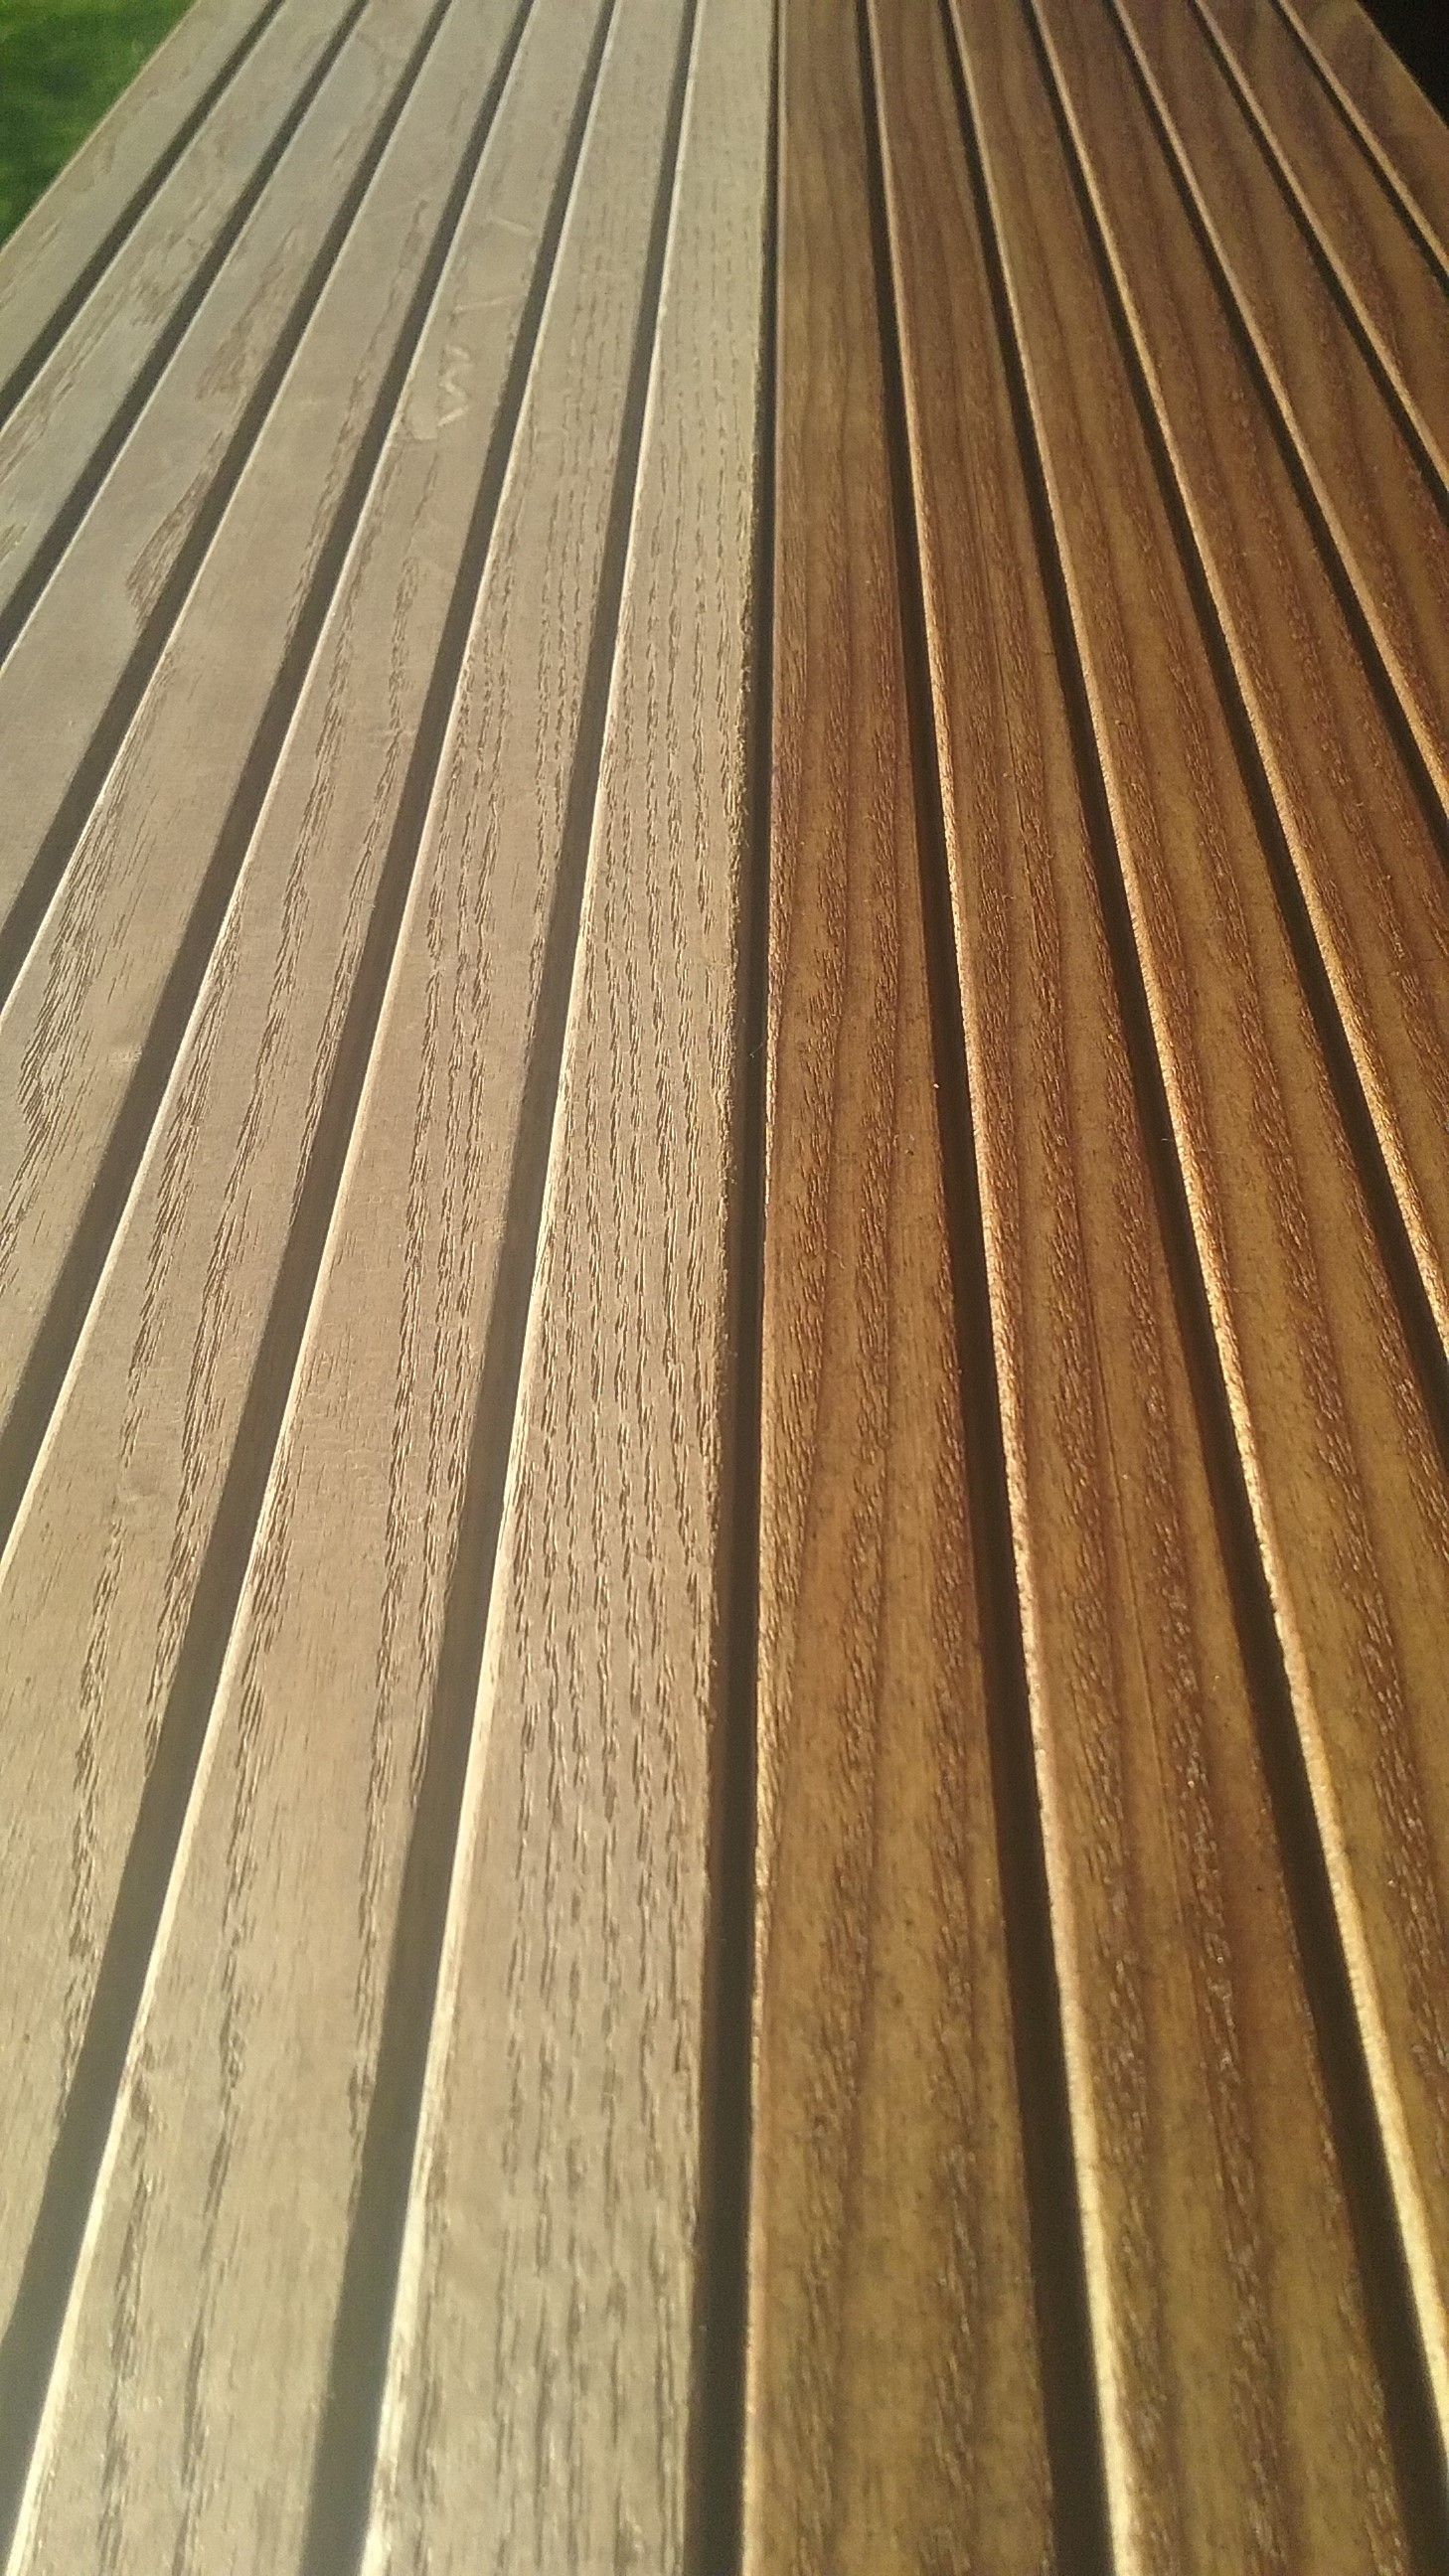 Novawood Thermally Modified Wood Decking Unfinished Exposed 4 Months And Cutek Extreme Wood Preservative 2 Coats Of Clear Coatin Wood Wood Protection Wood Deck